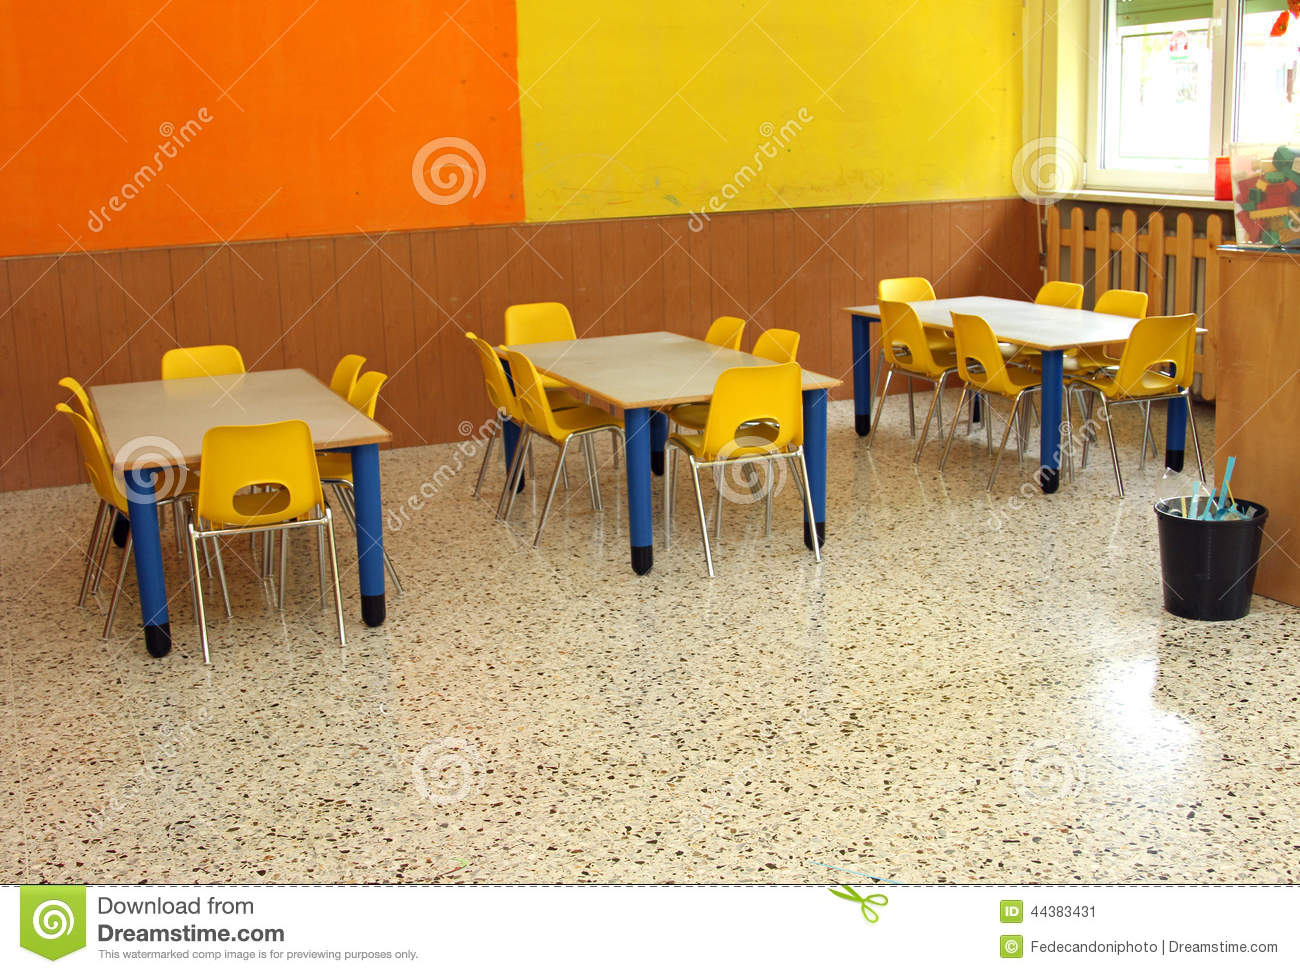 Classroom Table And Chairs classroom tables and chairs | ira design